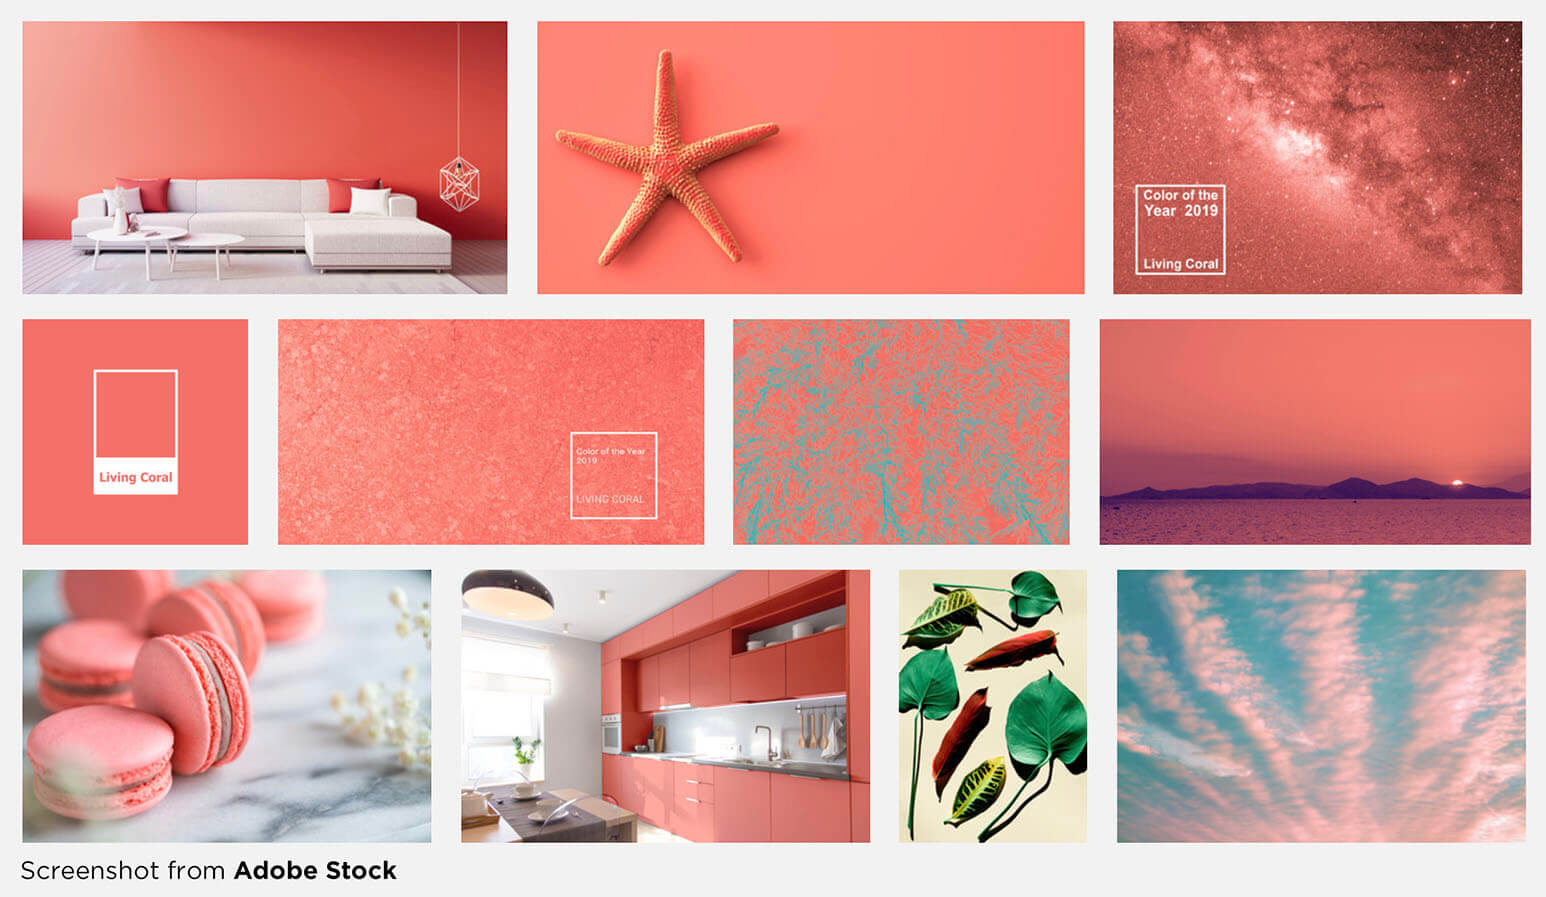 Living Coral, or Pantone 16-1546, is an optimistic blend of peach and gold with a pink hue that shows up more in the natural world than in Pantone's rendition.